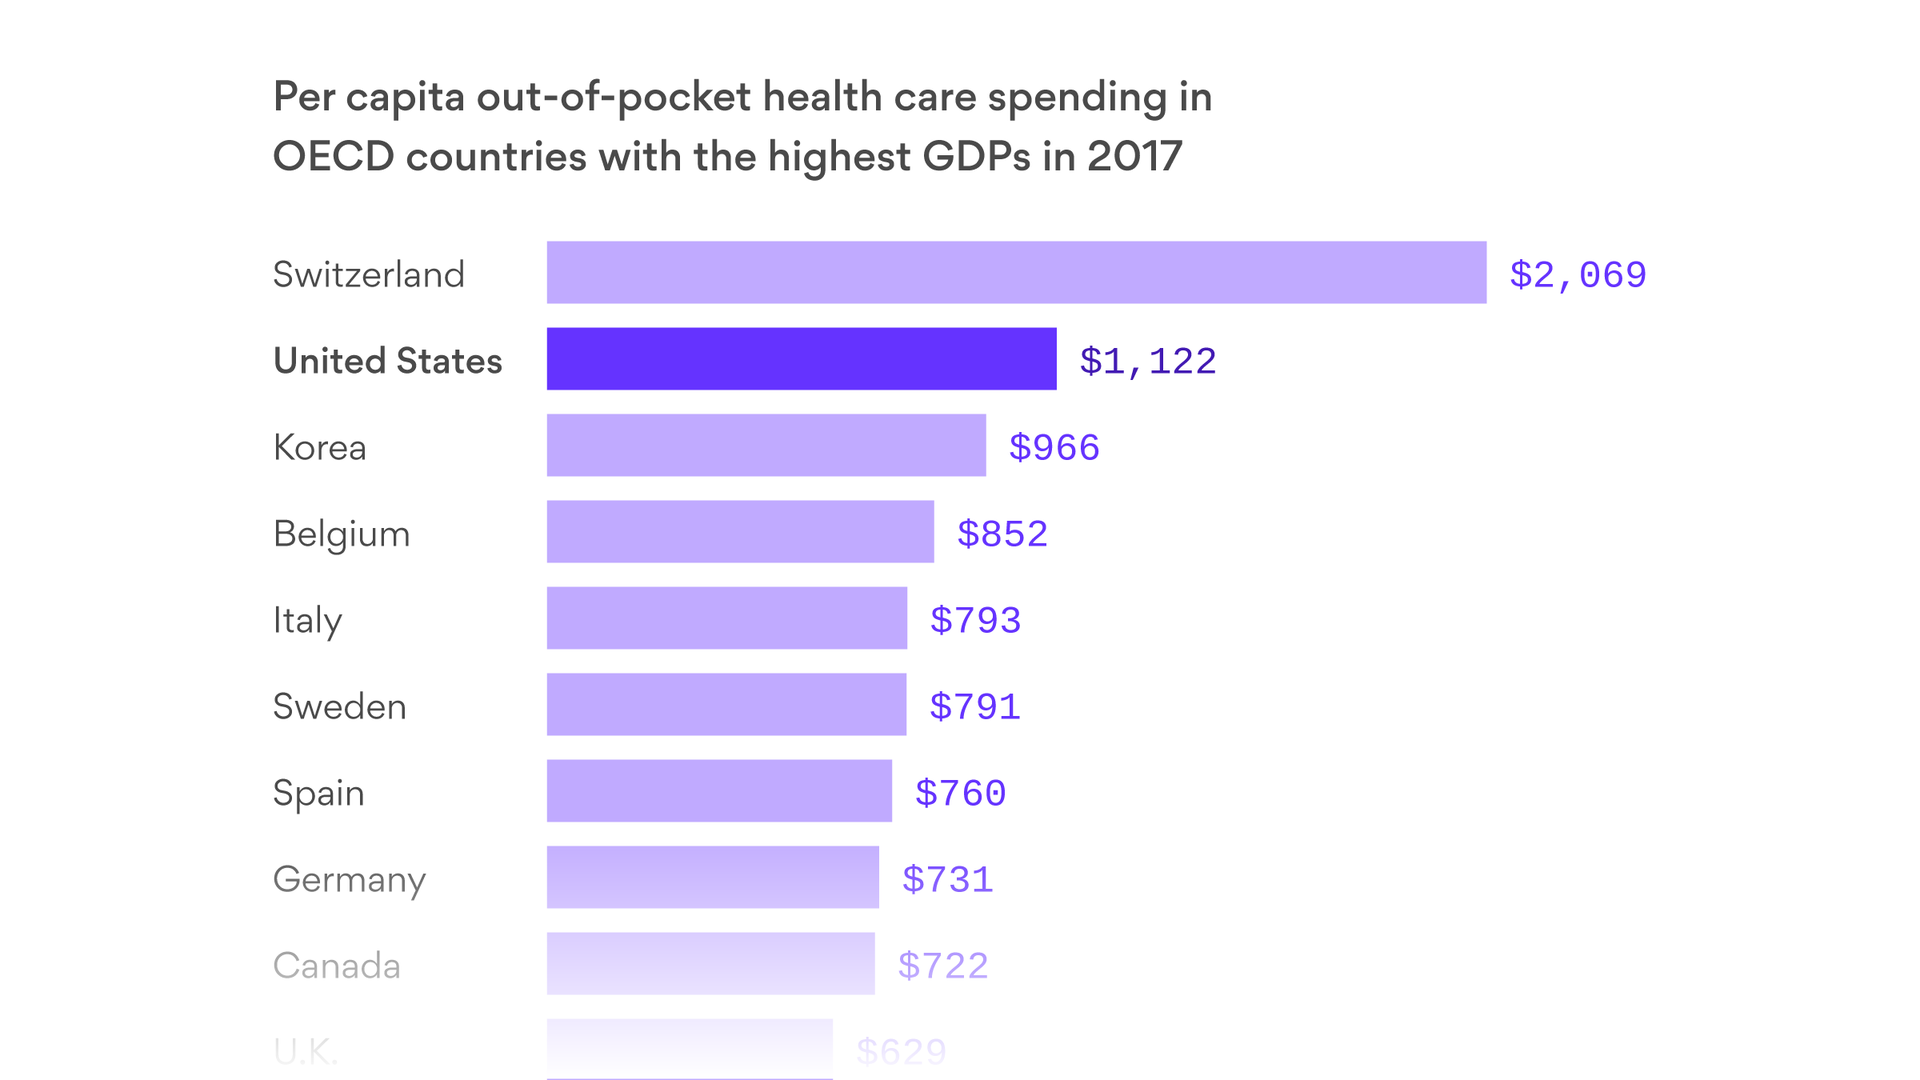 America pays more out-of-pocket for health care than most coountries